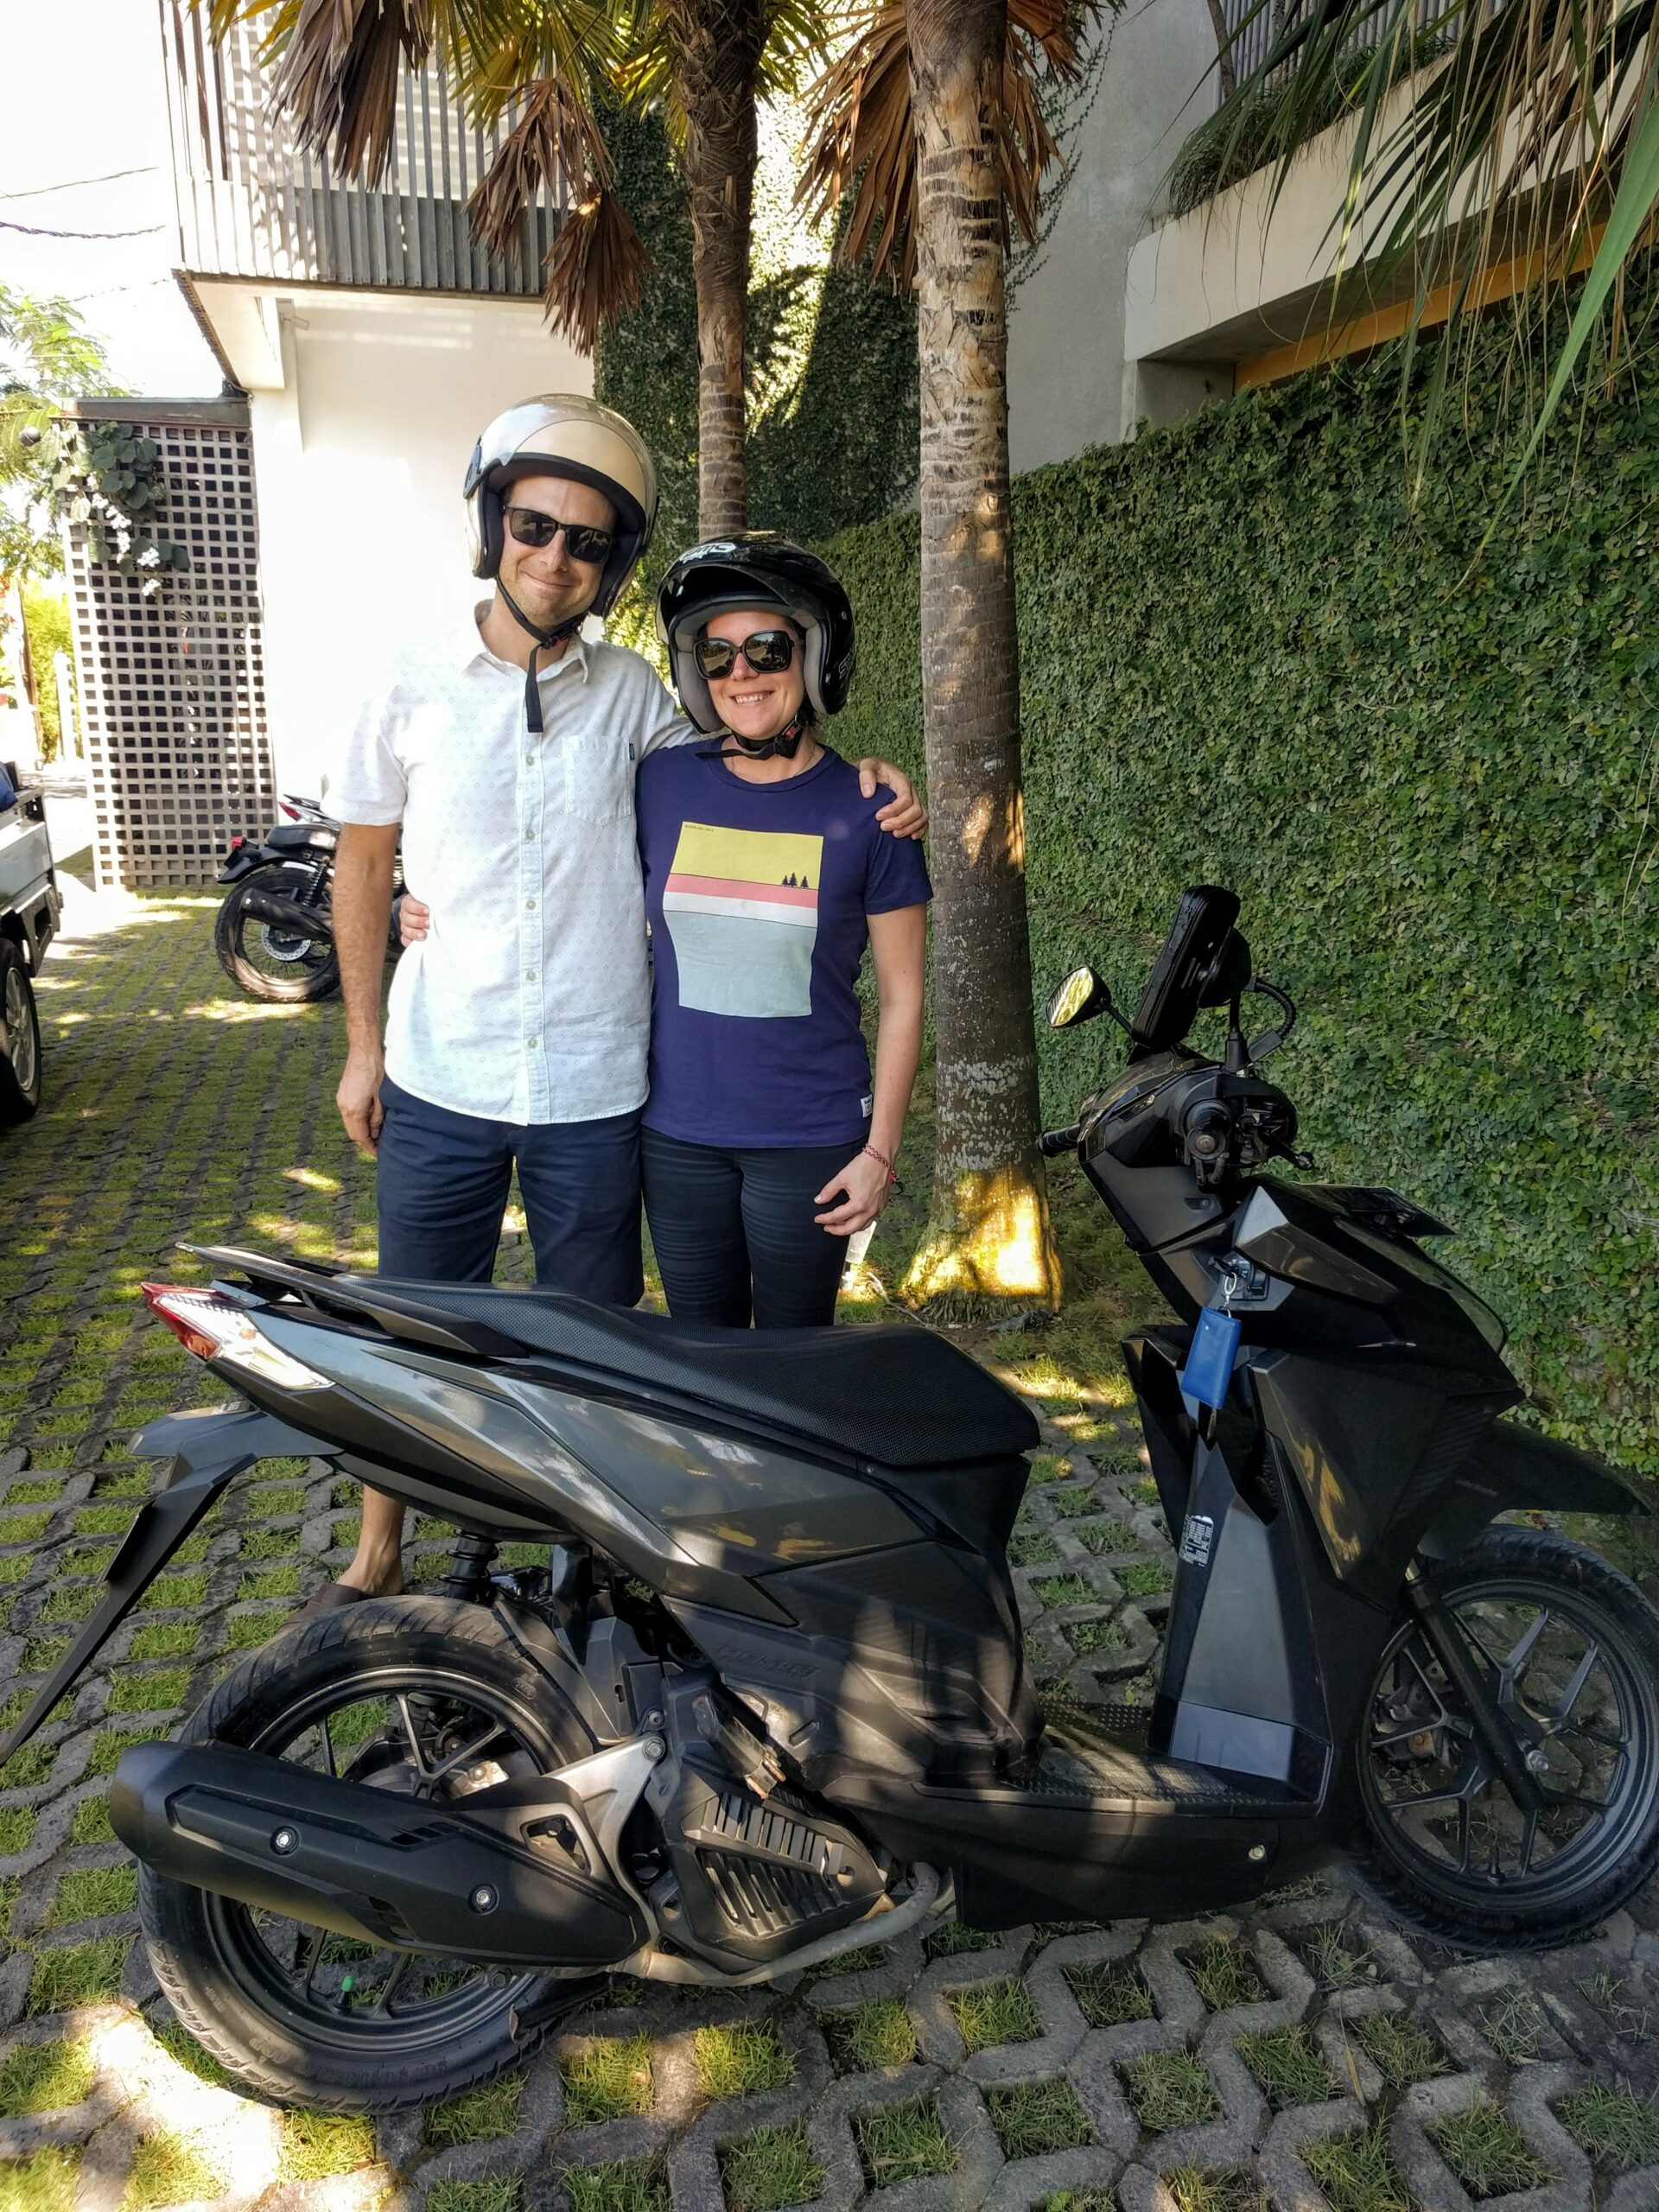 Scooting in Bali!